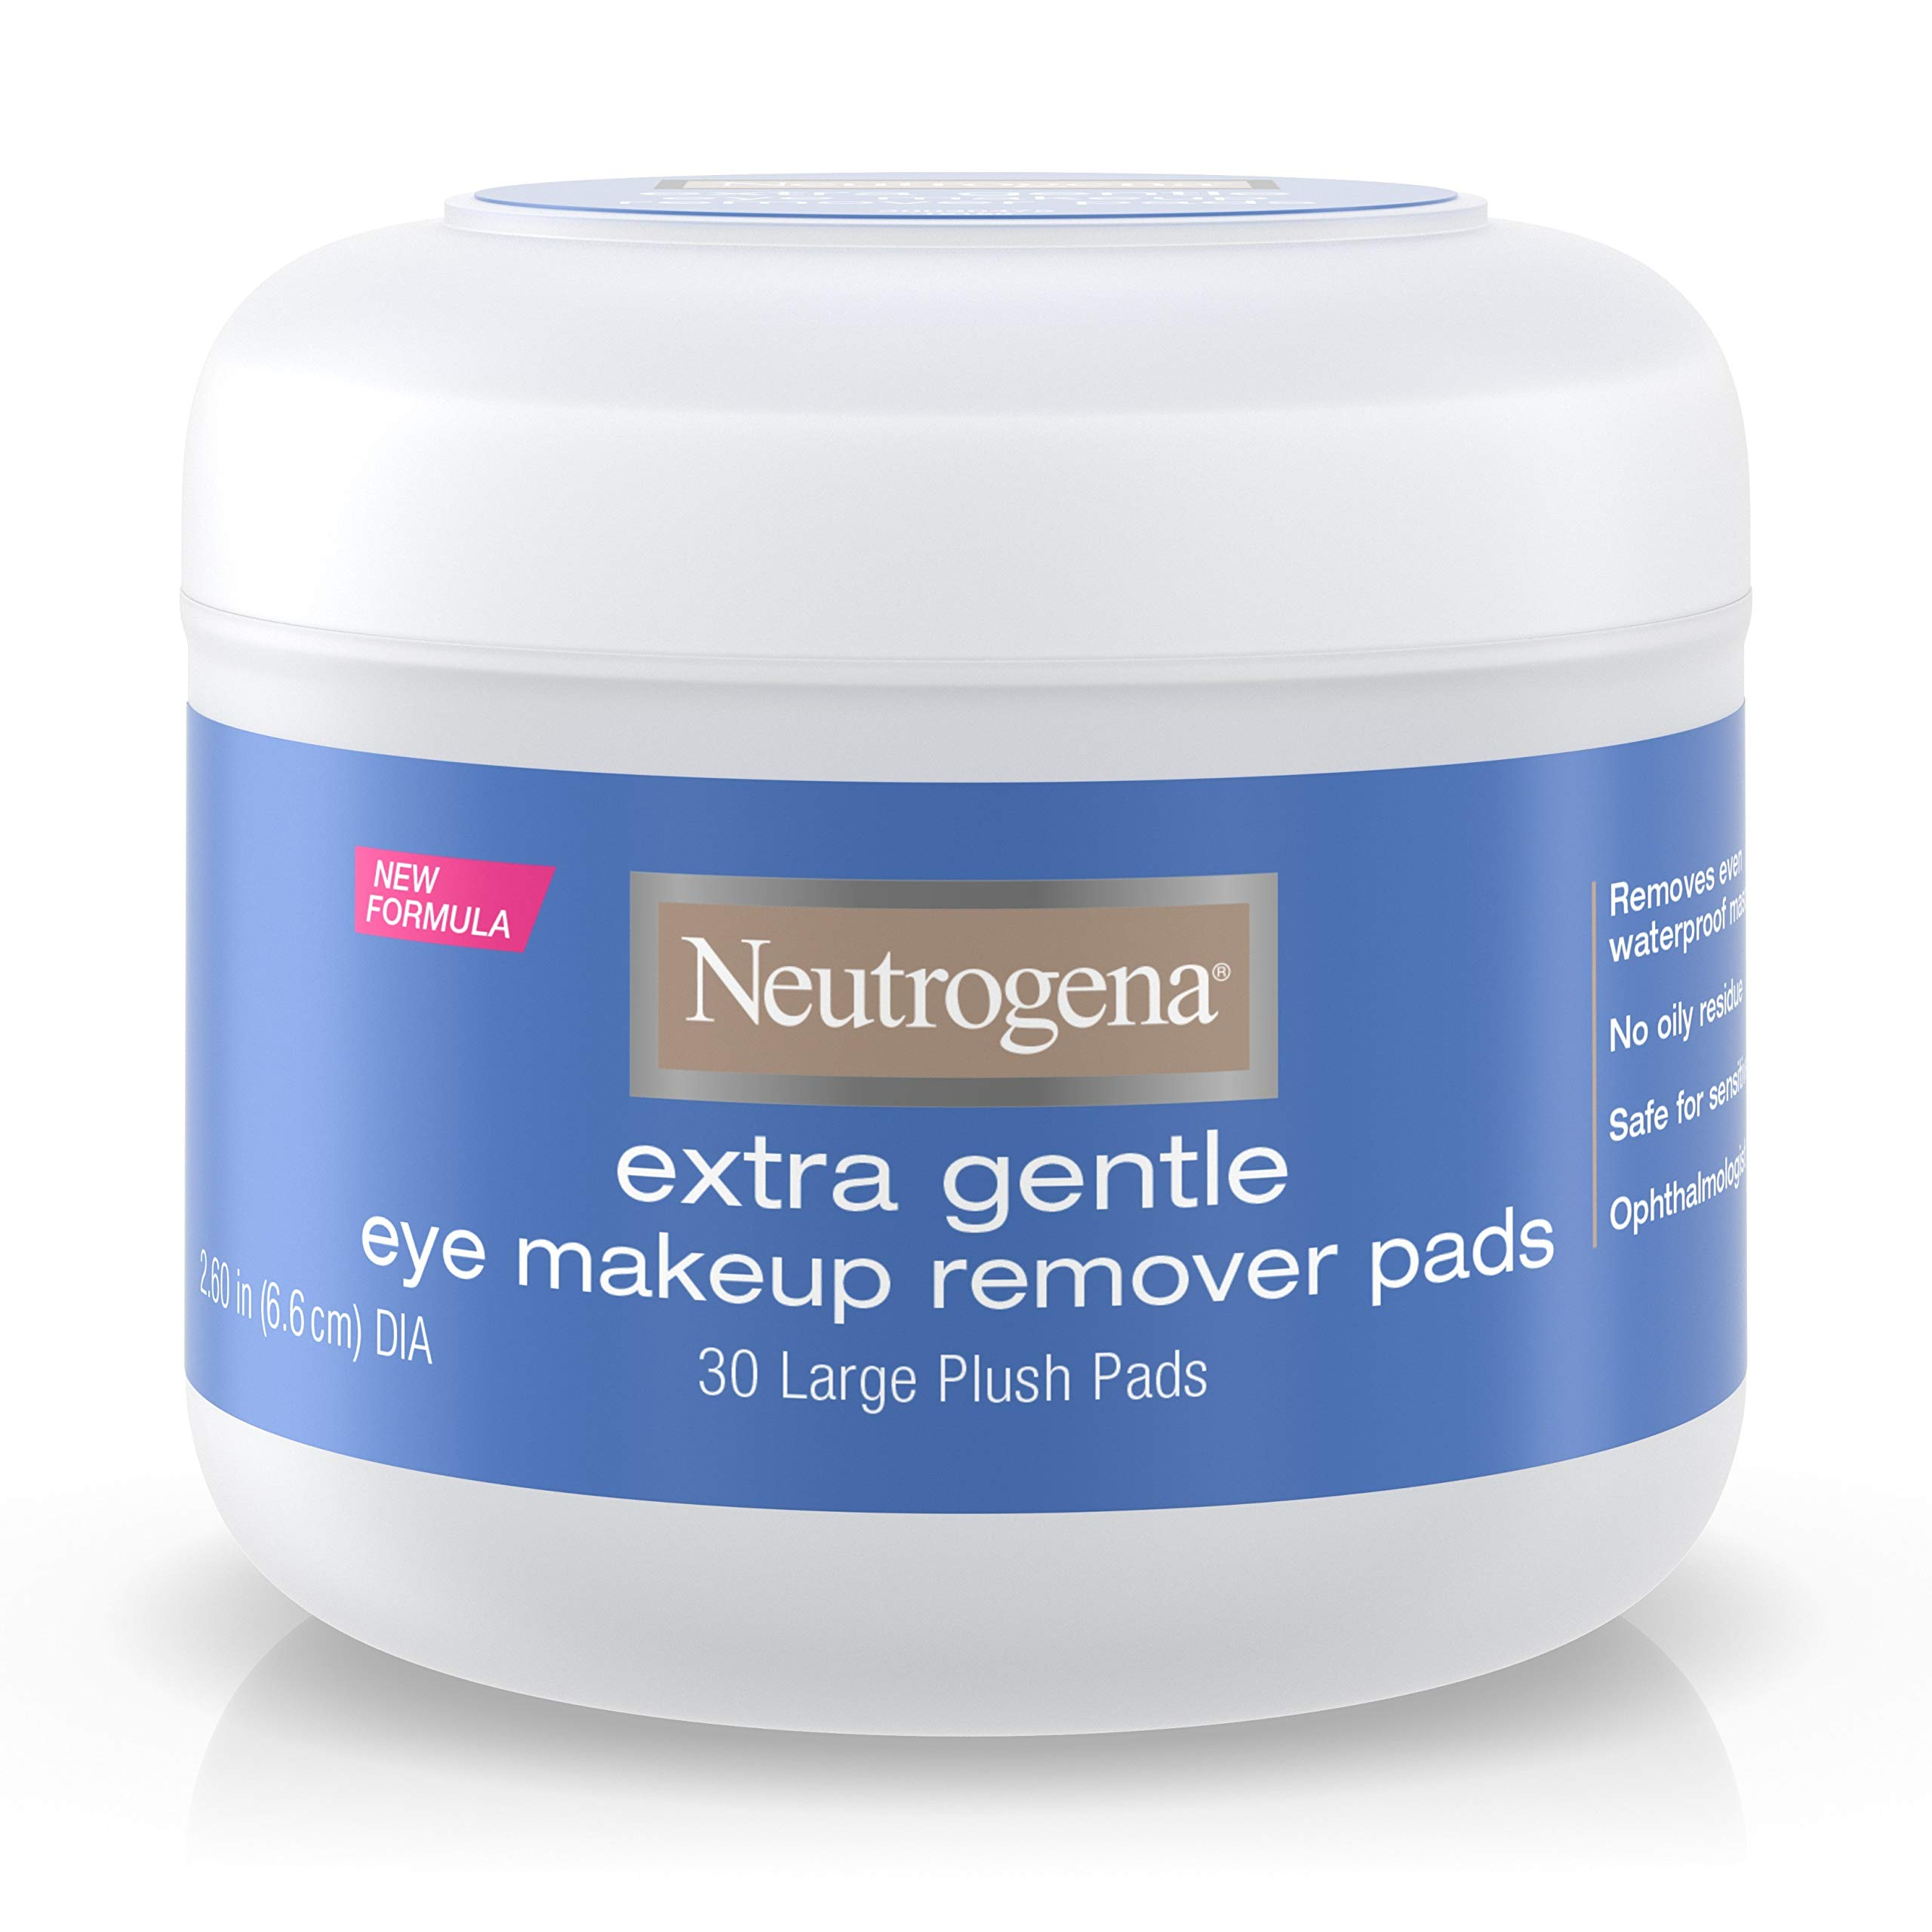 Neutrogena Extra Gentle Eye Makeup Remover Pads, Sensitive Skin 30 Count (Pack of 2) by Neutrogena